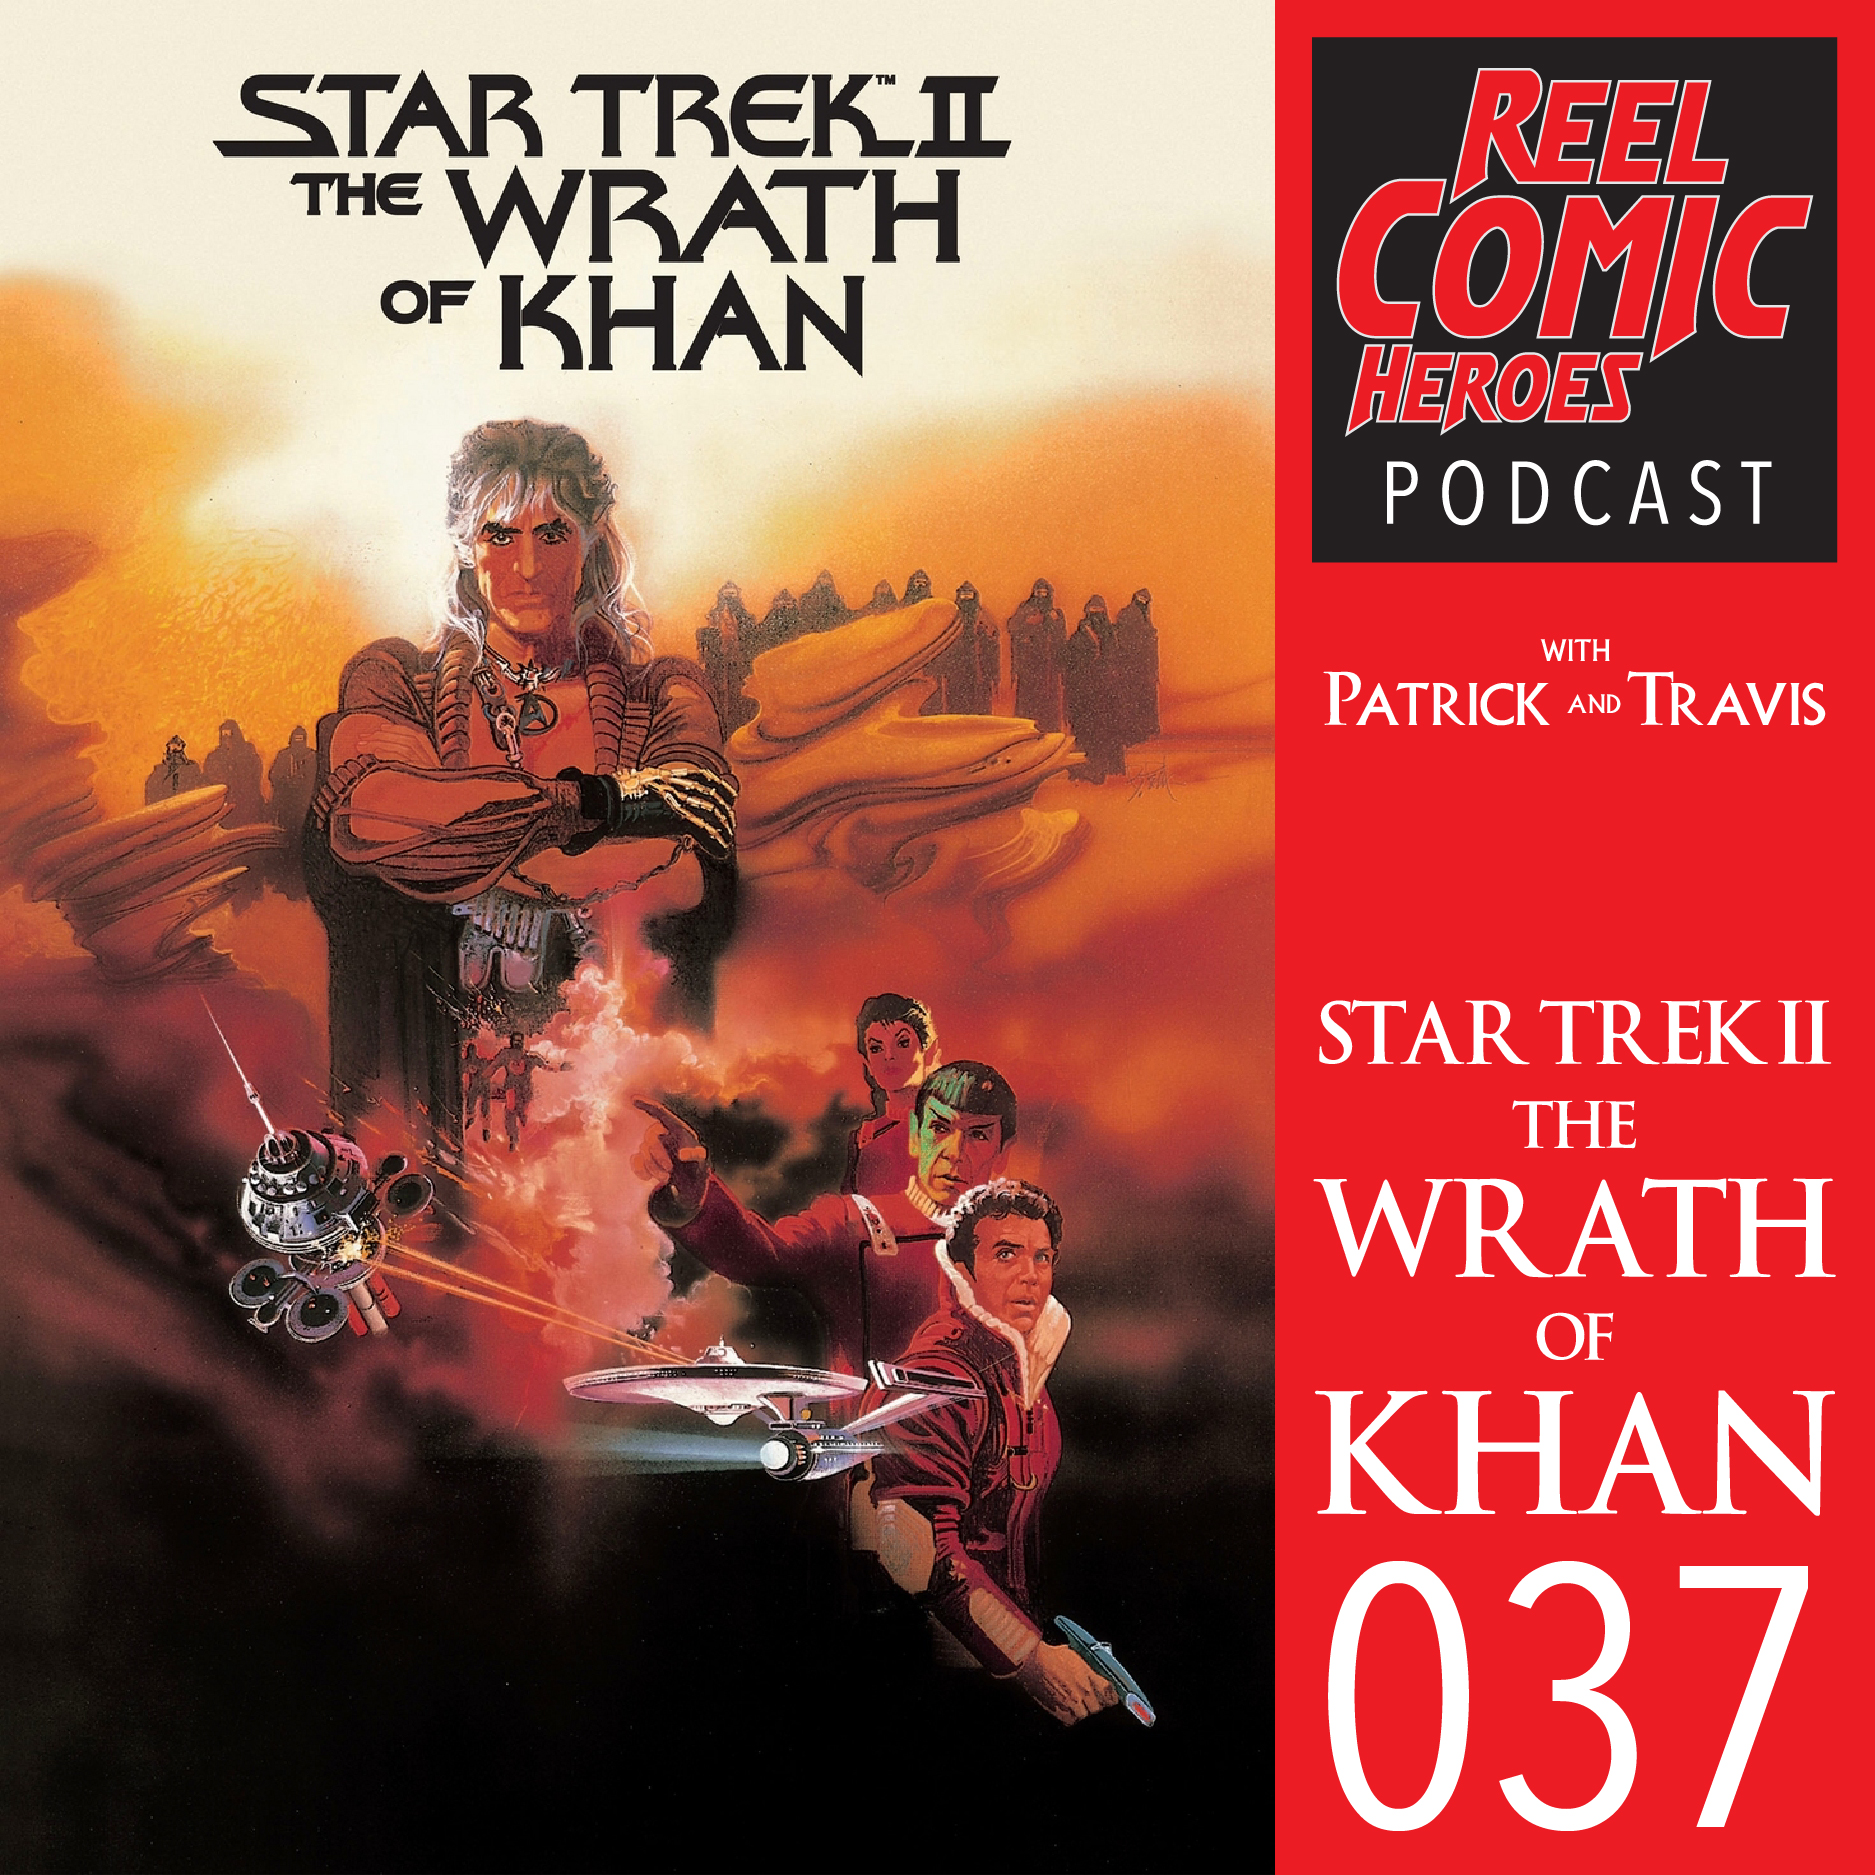 Artwork for Reel Comic Heroes 037 - Star Trek II: The Wrath of Khan